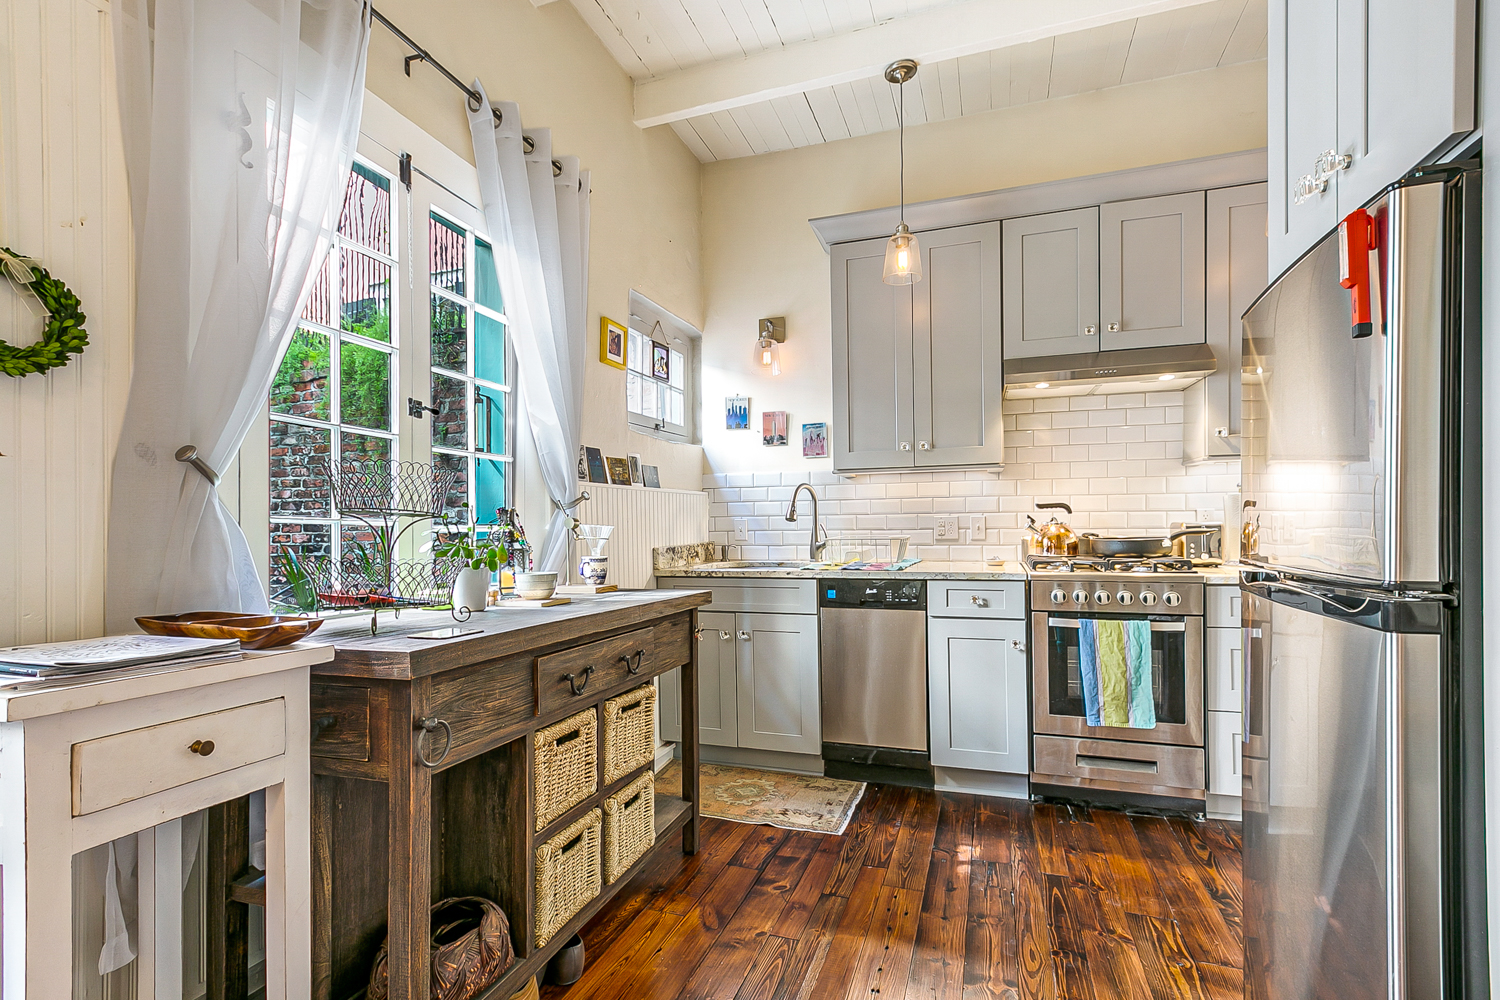 French Quarter, Condo, 1 beds, 2.0 baths, $2400 per month New Orleans Rental - devie image_4